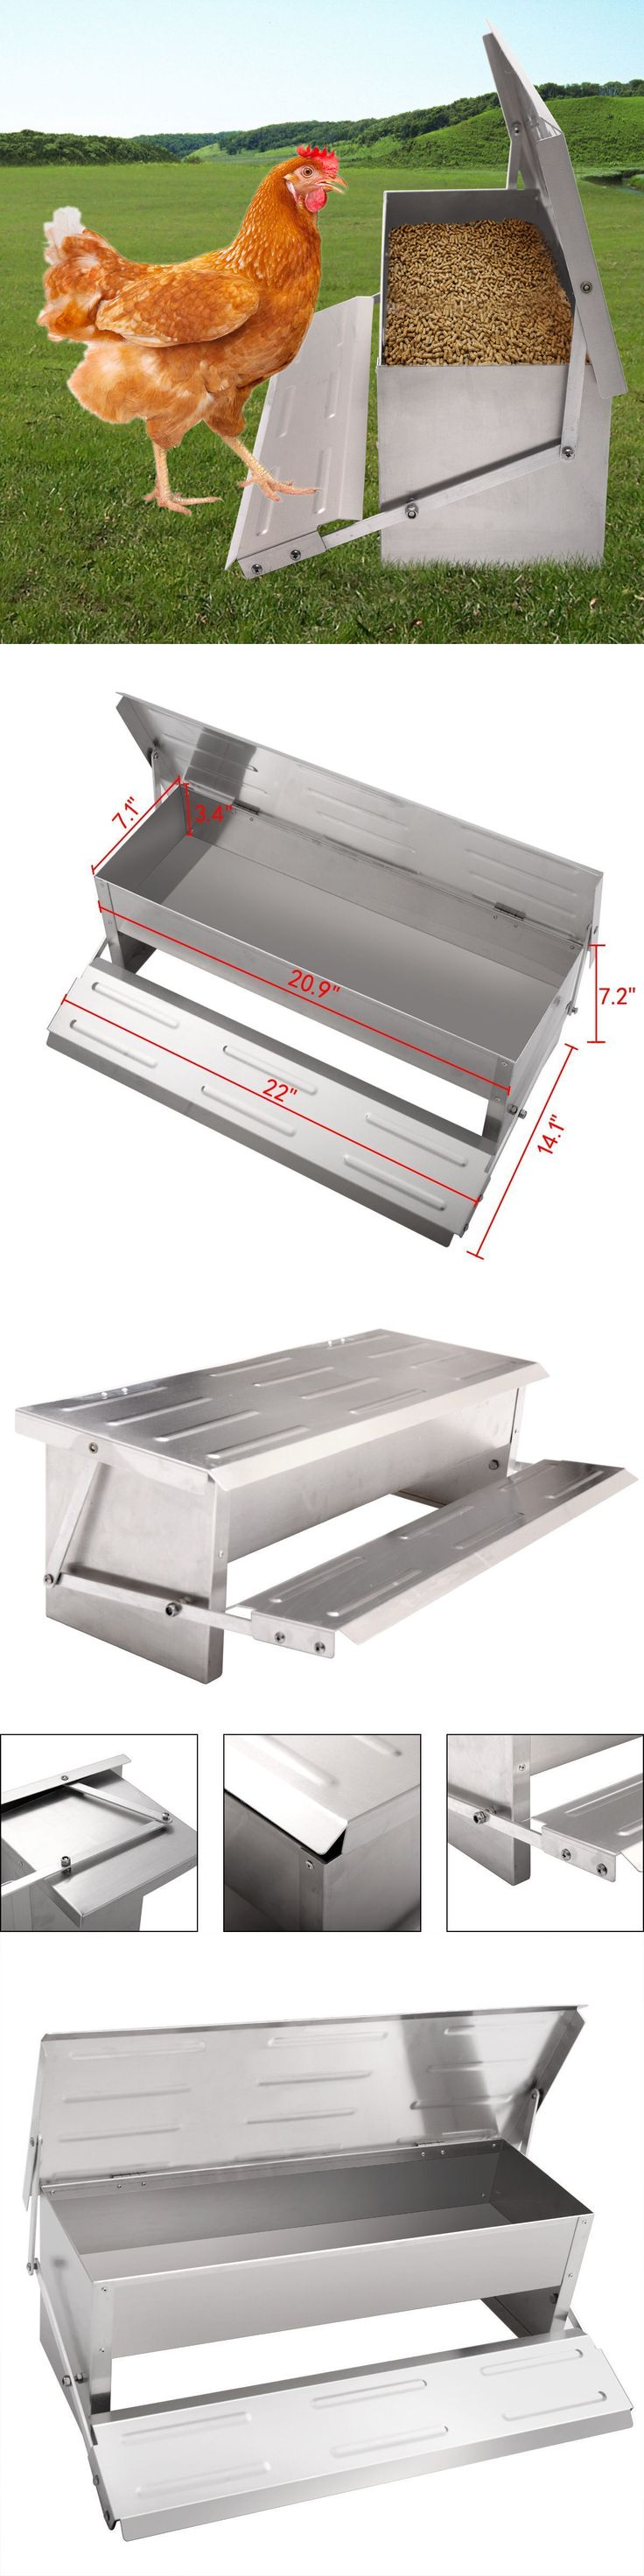 Backyard Poultry Supplies 177801: Chicken Feeder Automatic Treadle Self Open Aluminium Feed Chook Poultry -> BUY IT NOW ONLY: $51.98 on eBay!